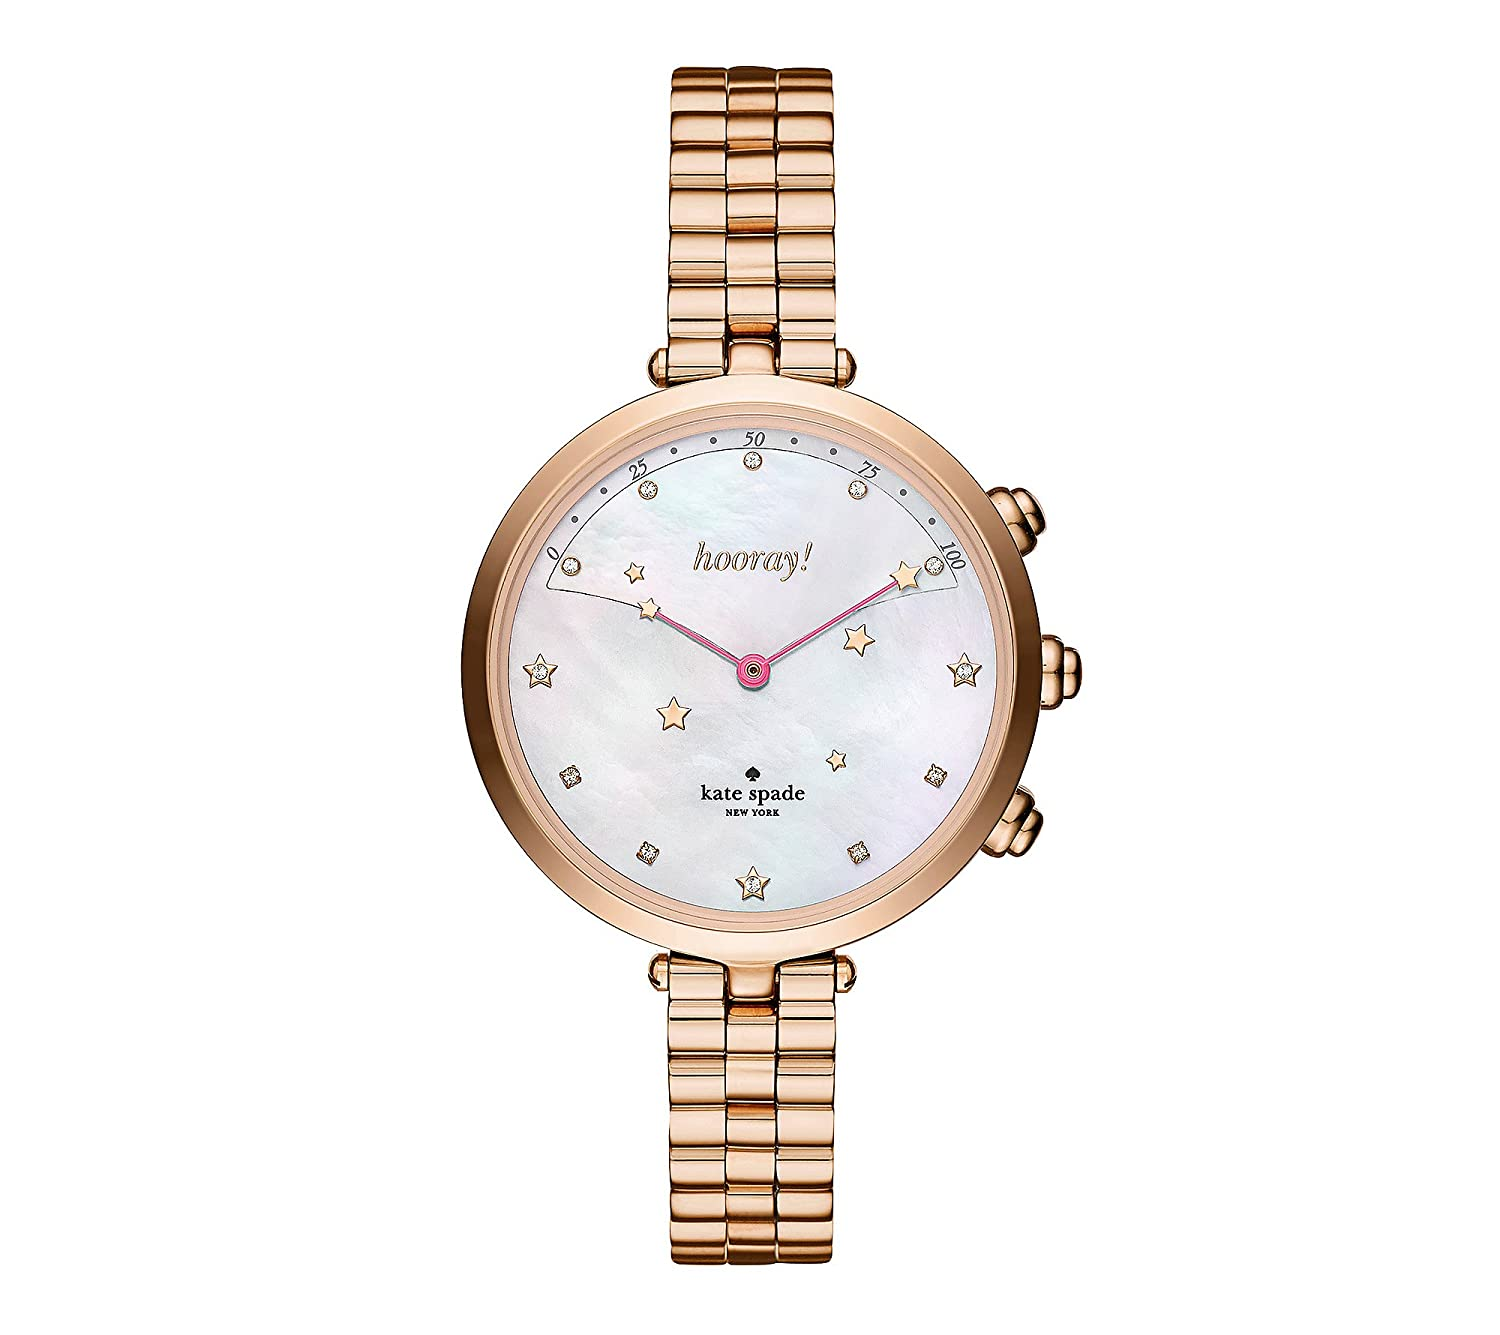 Amazon.com: kate spade new york Smart Watch (Model: KST23206 ...